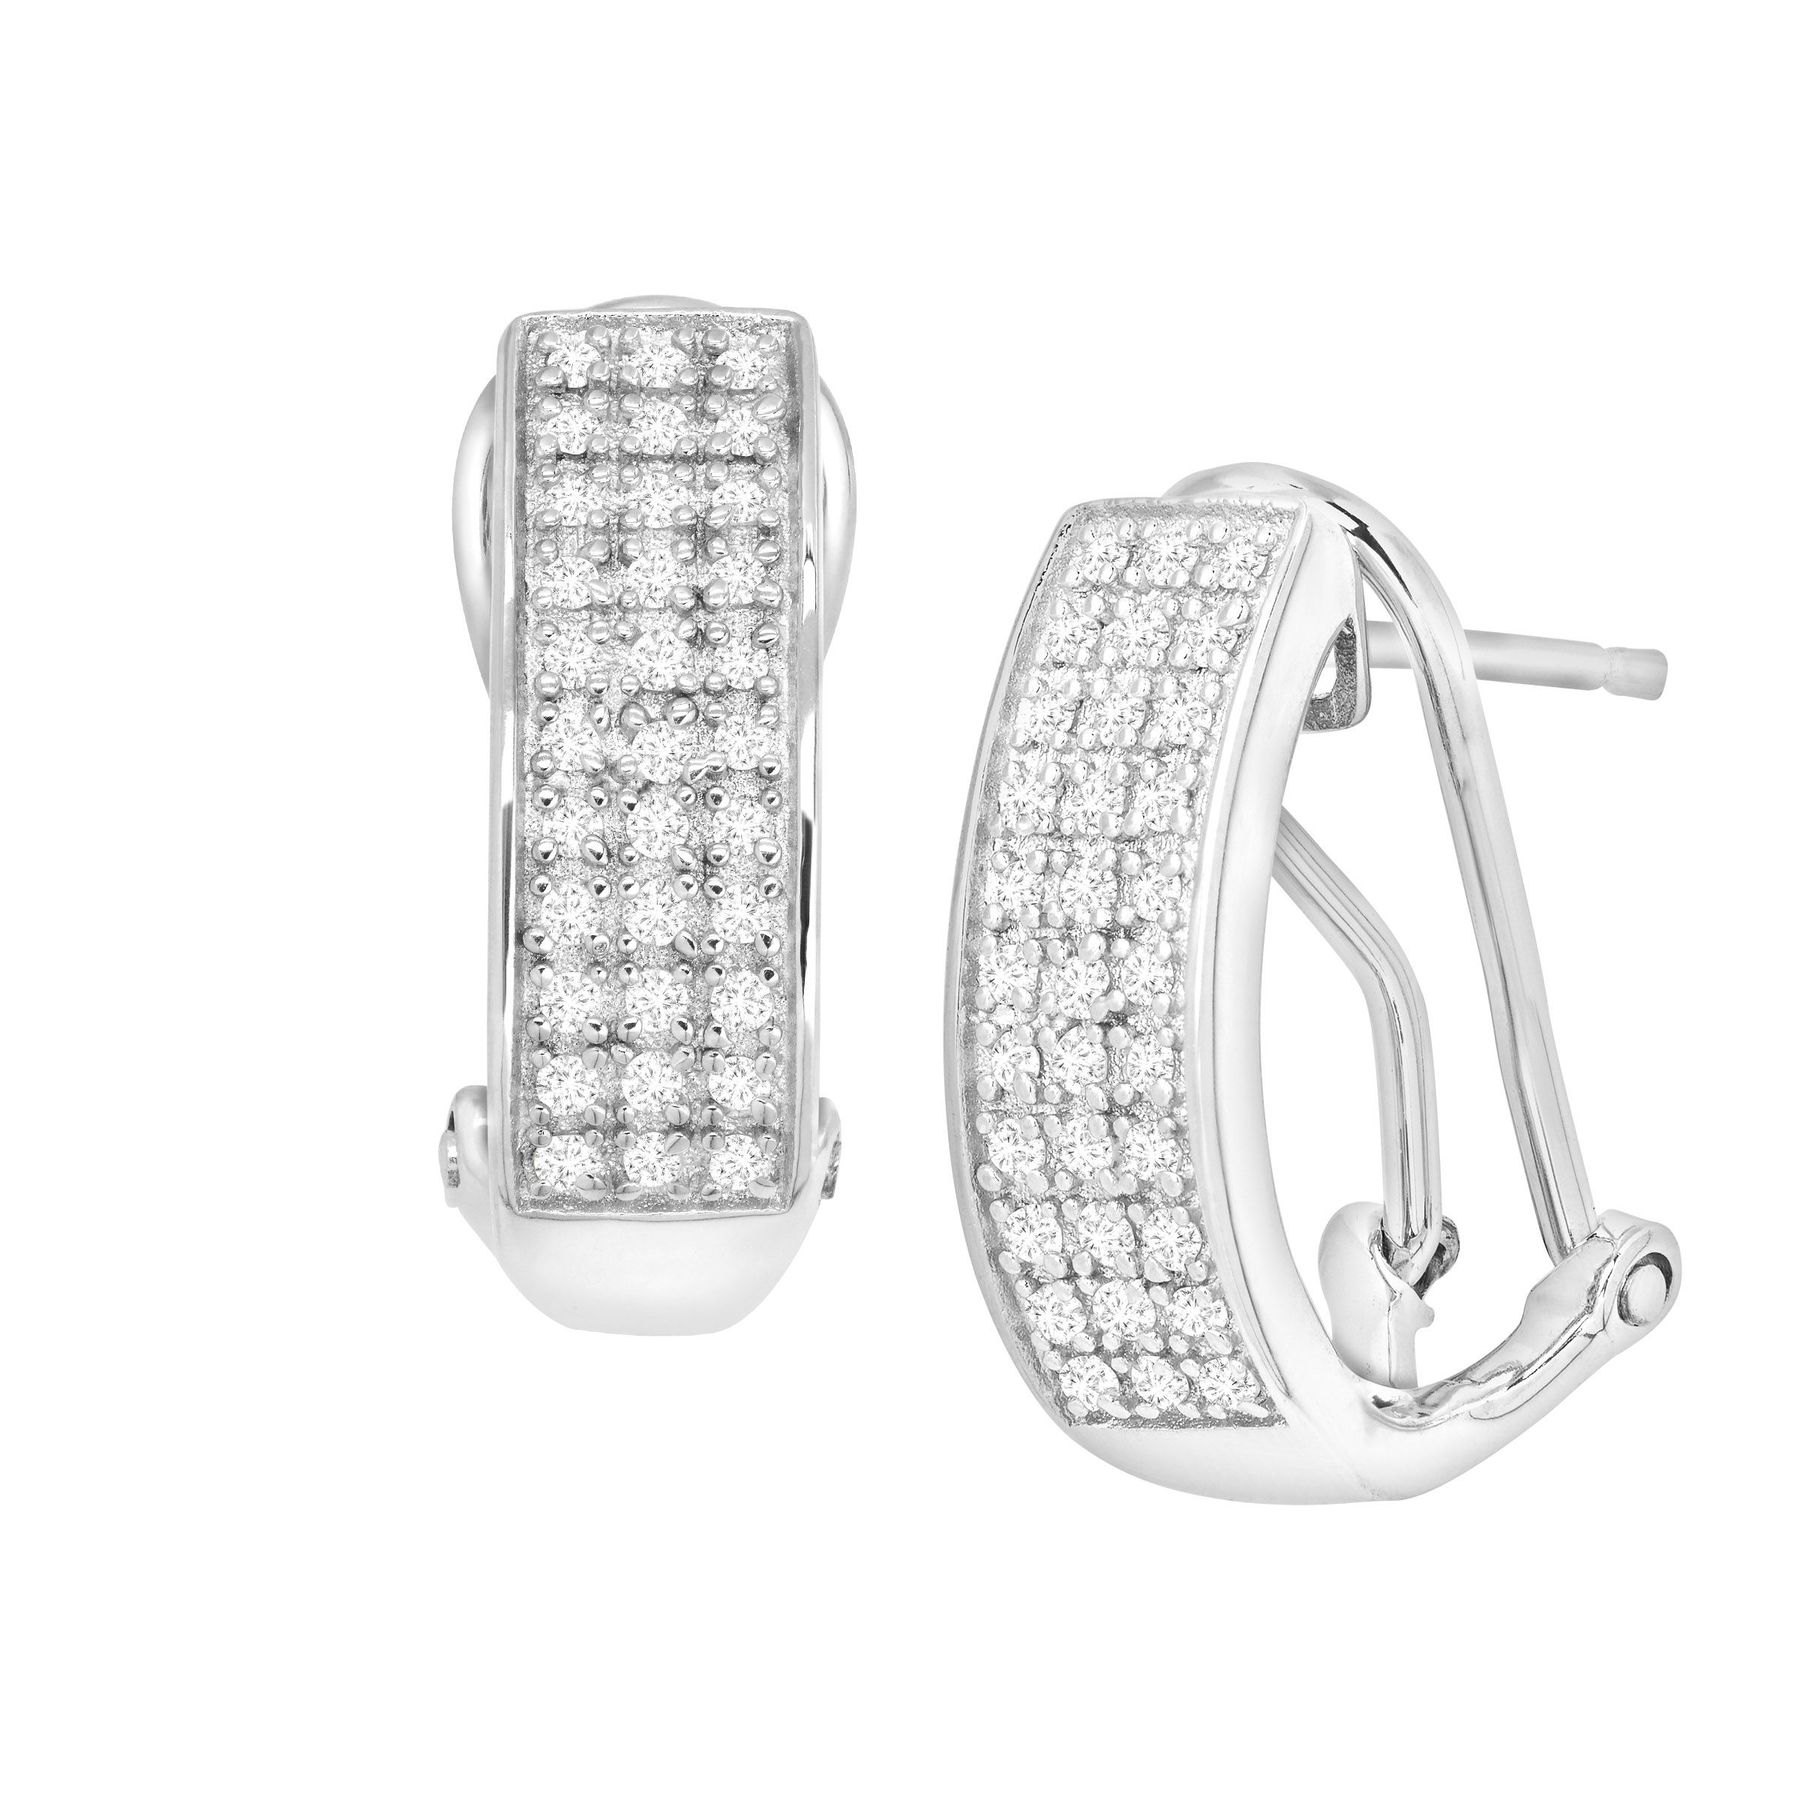 rhinestone earring on earrings products clip plaza